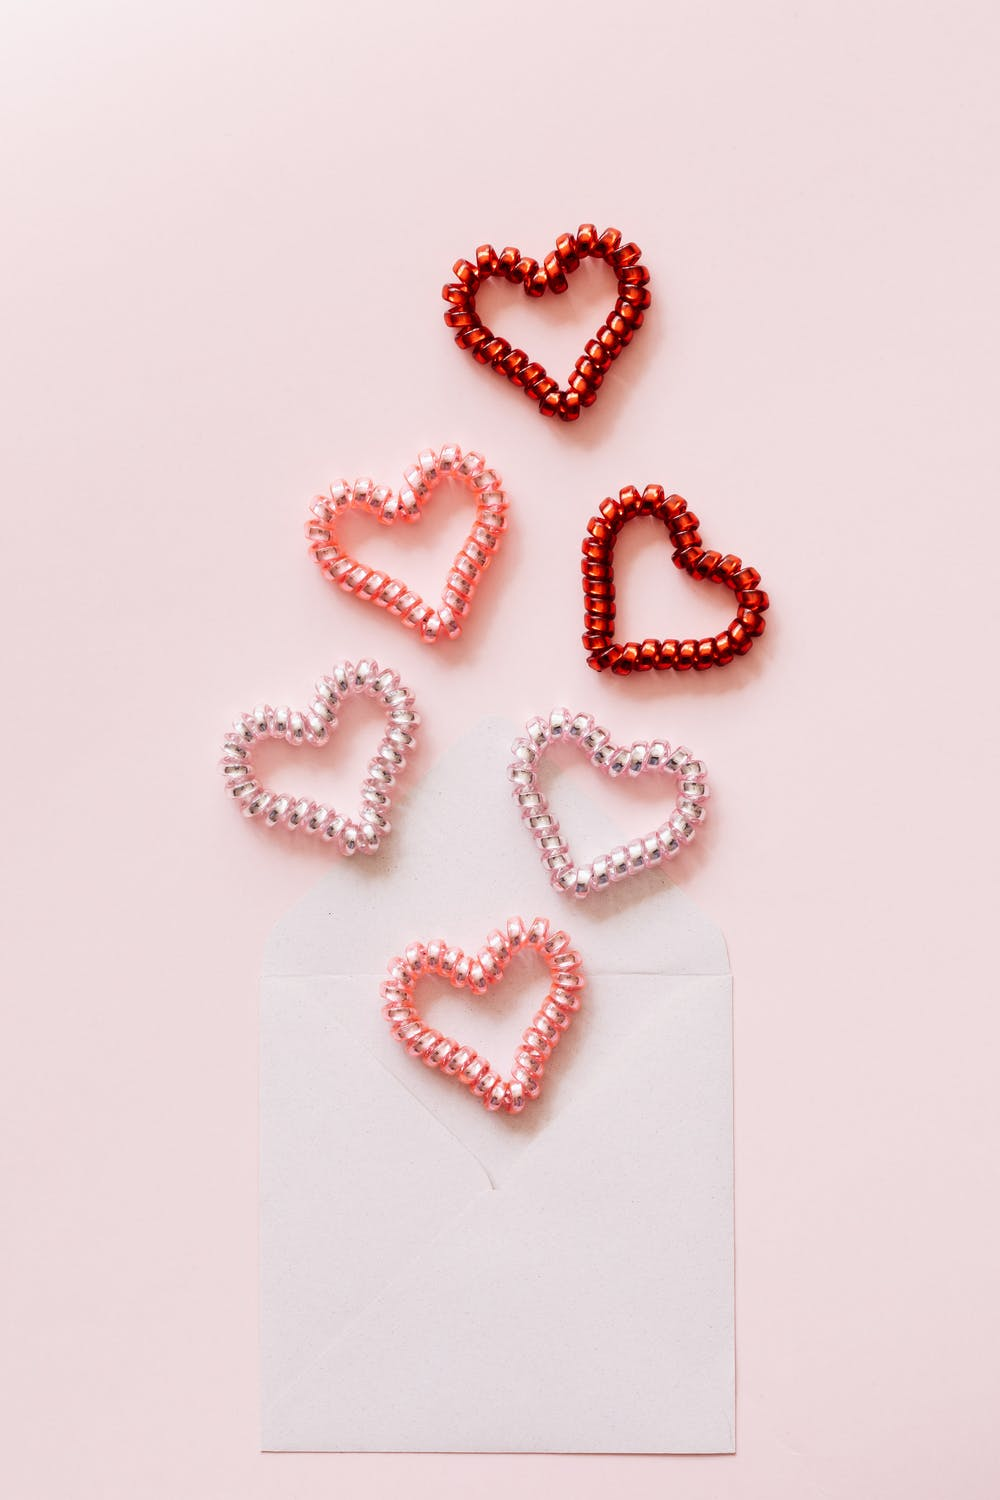 Cute Valentine's iPhone wallpapers